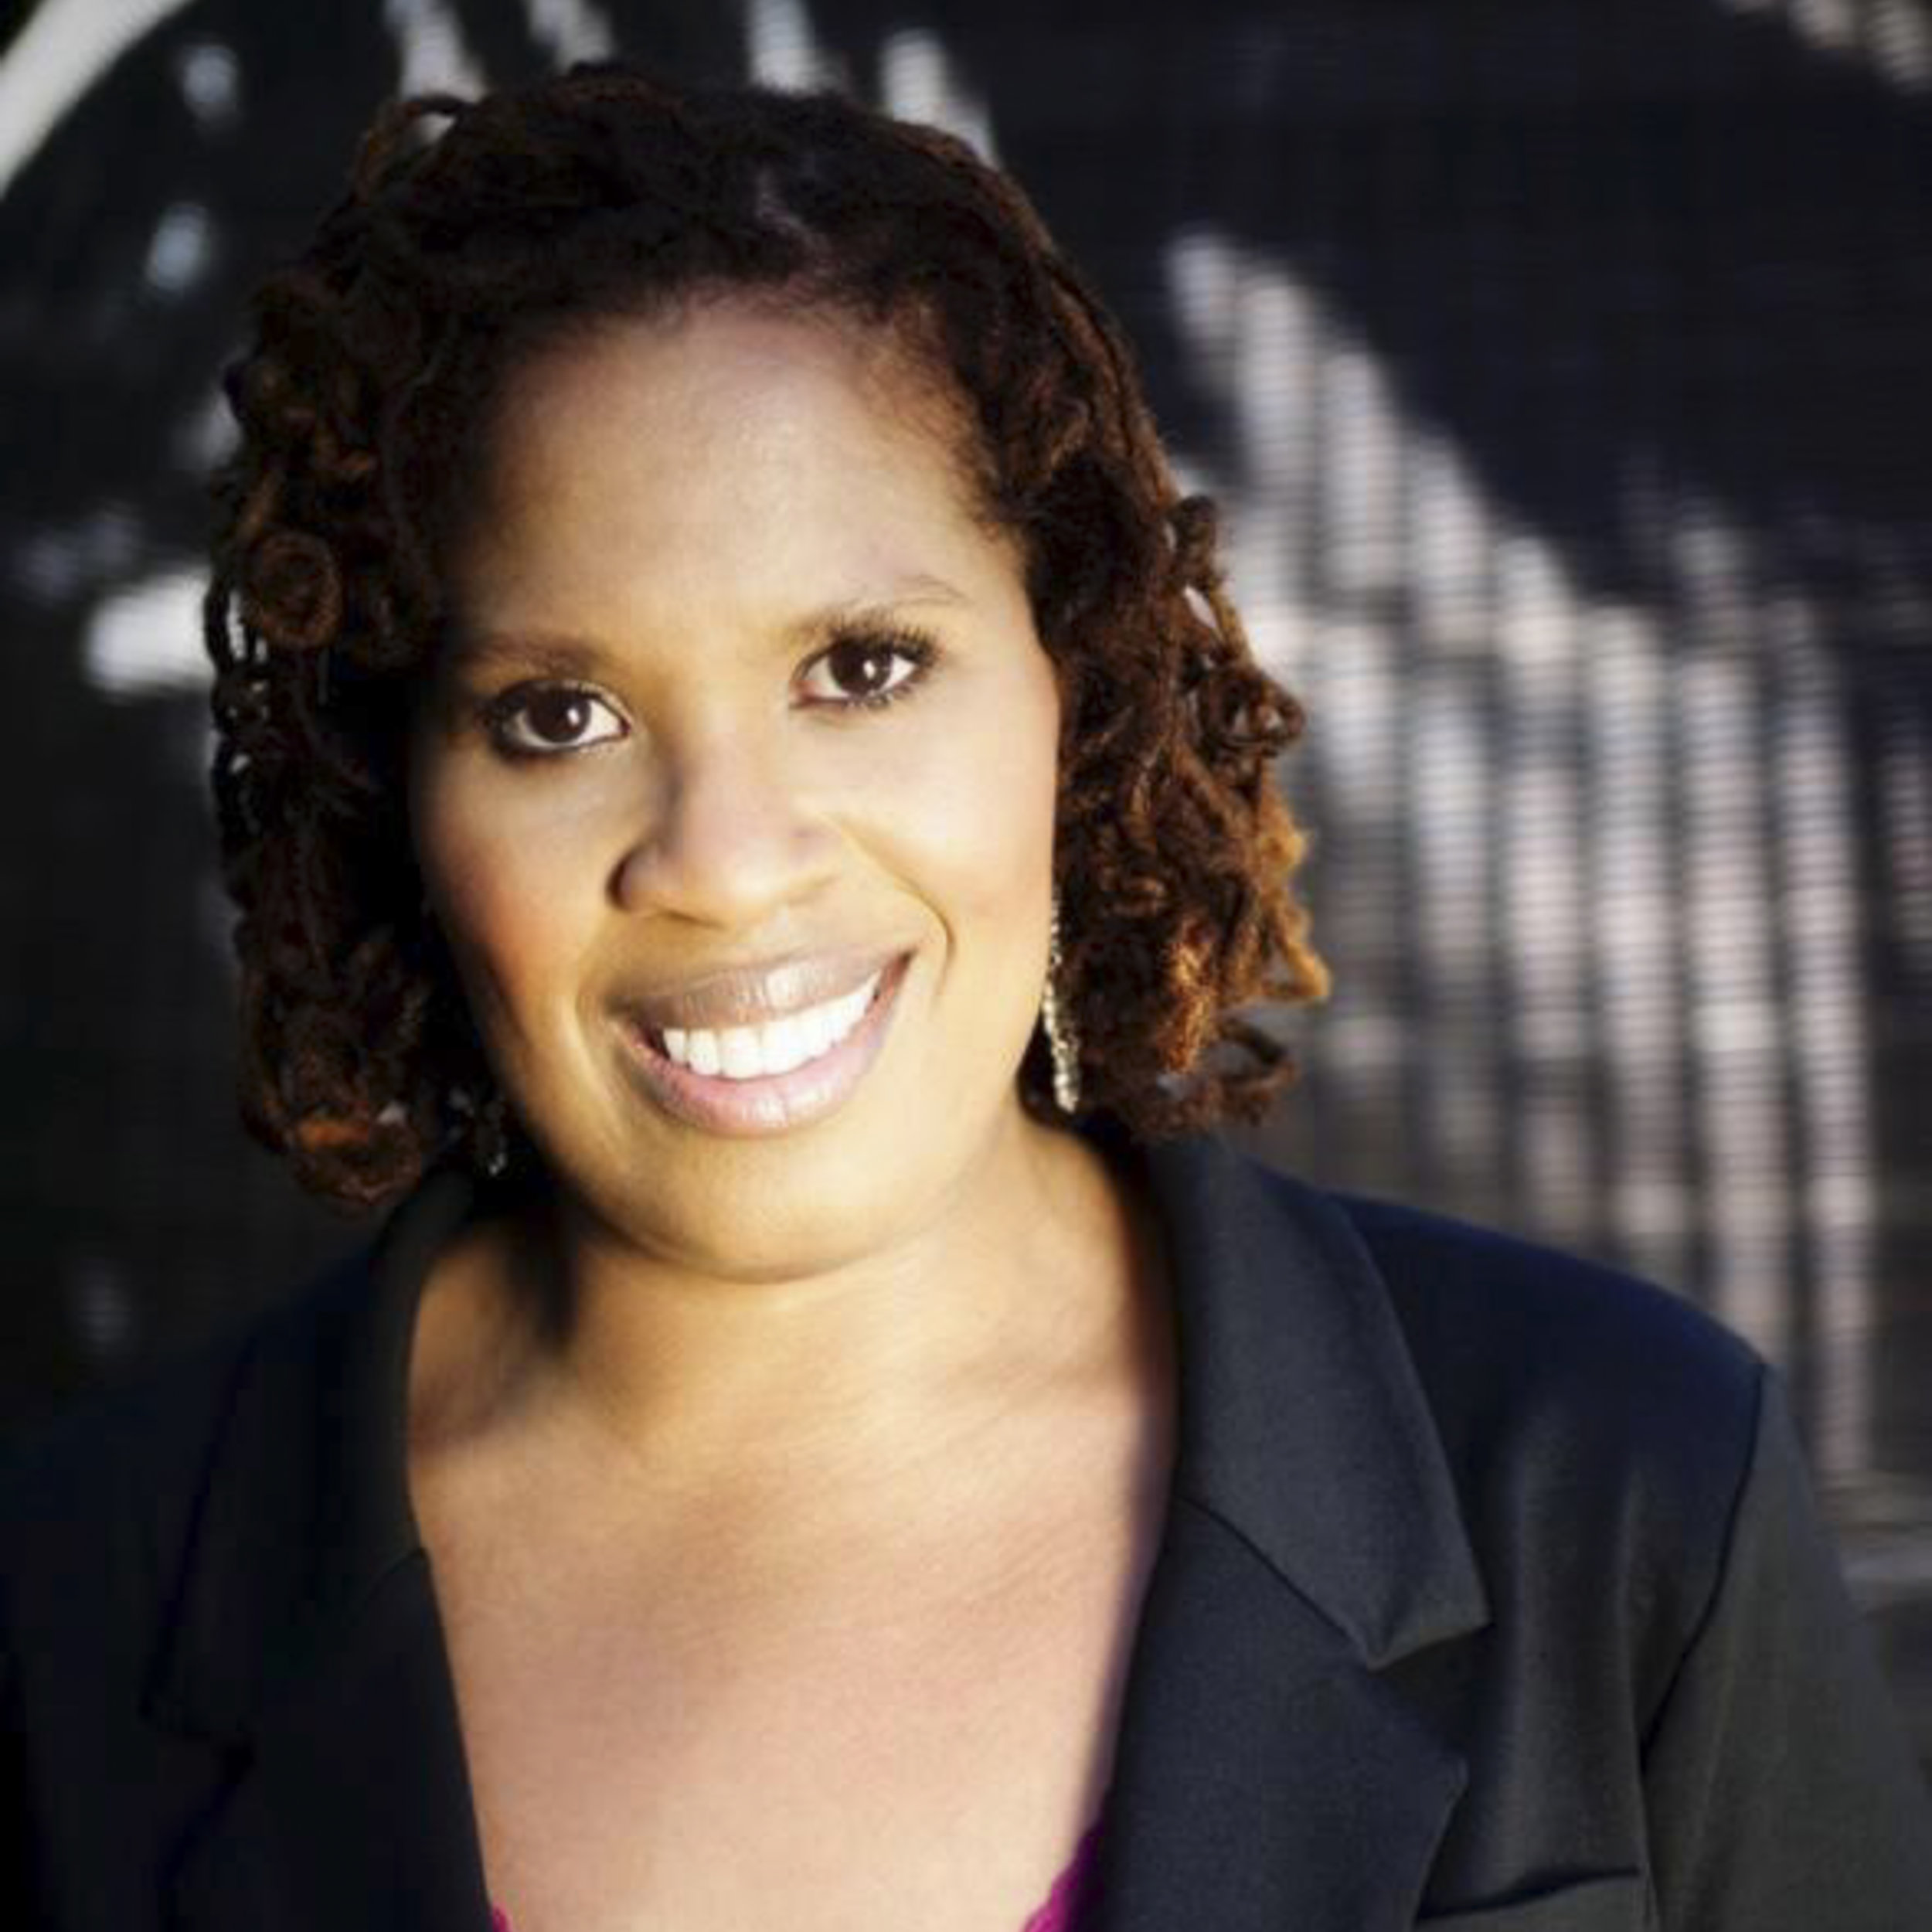 Dayna Lynne North - Executive producer, showrunner, and writer on female-driven shows like the CW's Veronica Mars and HBO's Insecure.